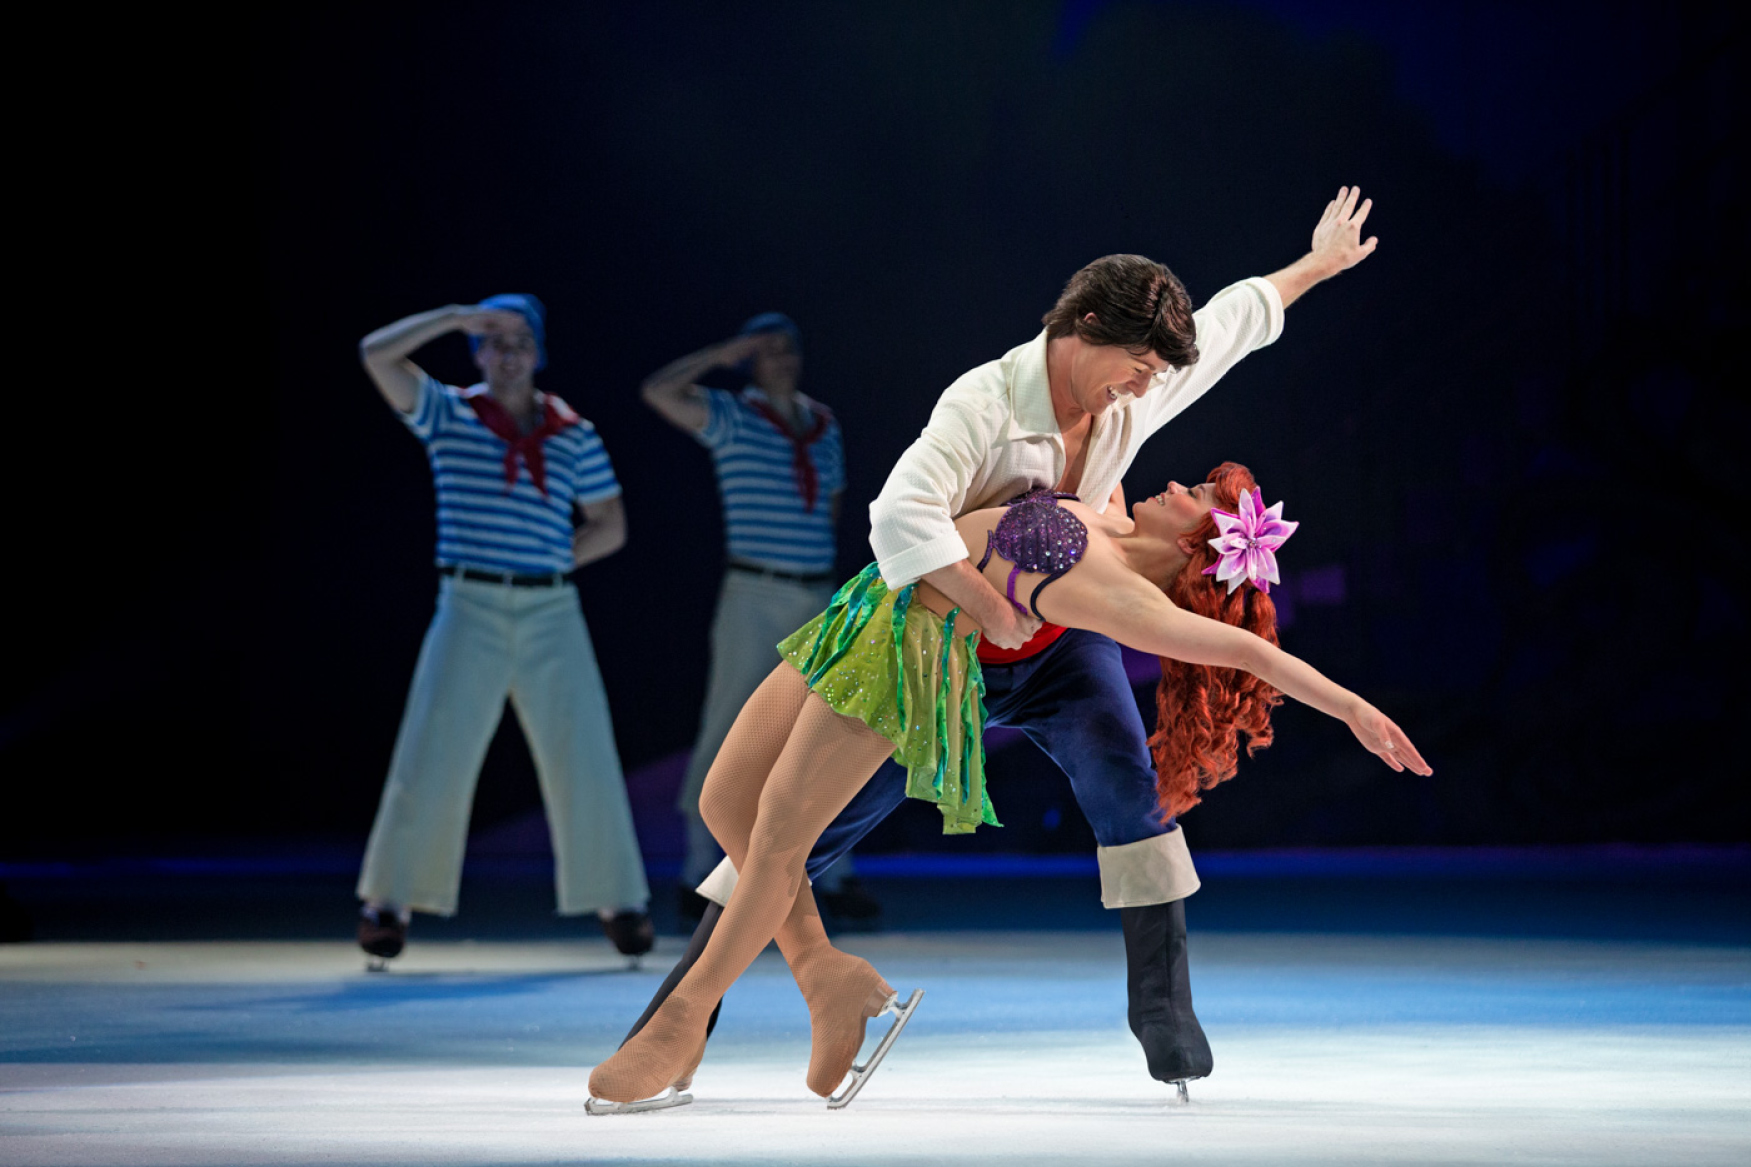 Ariel and Prince Eric on Ice